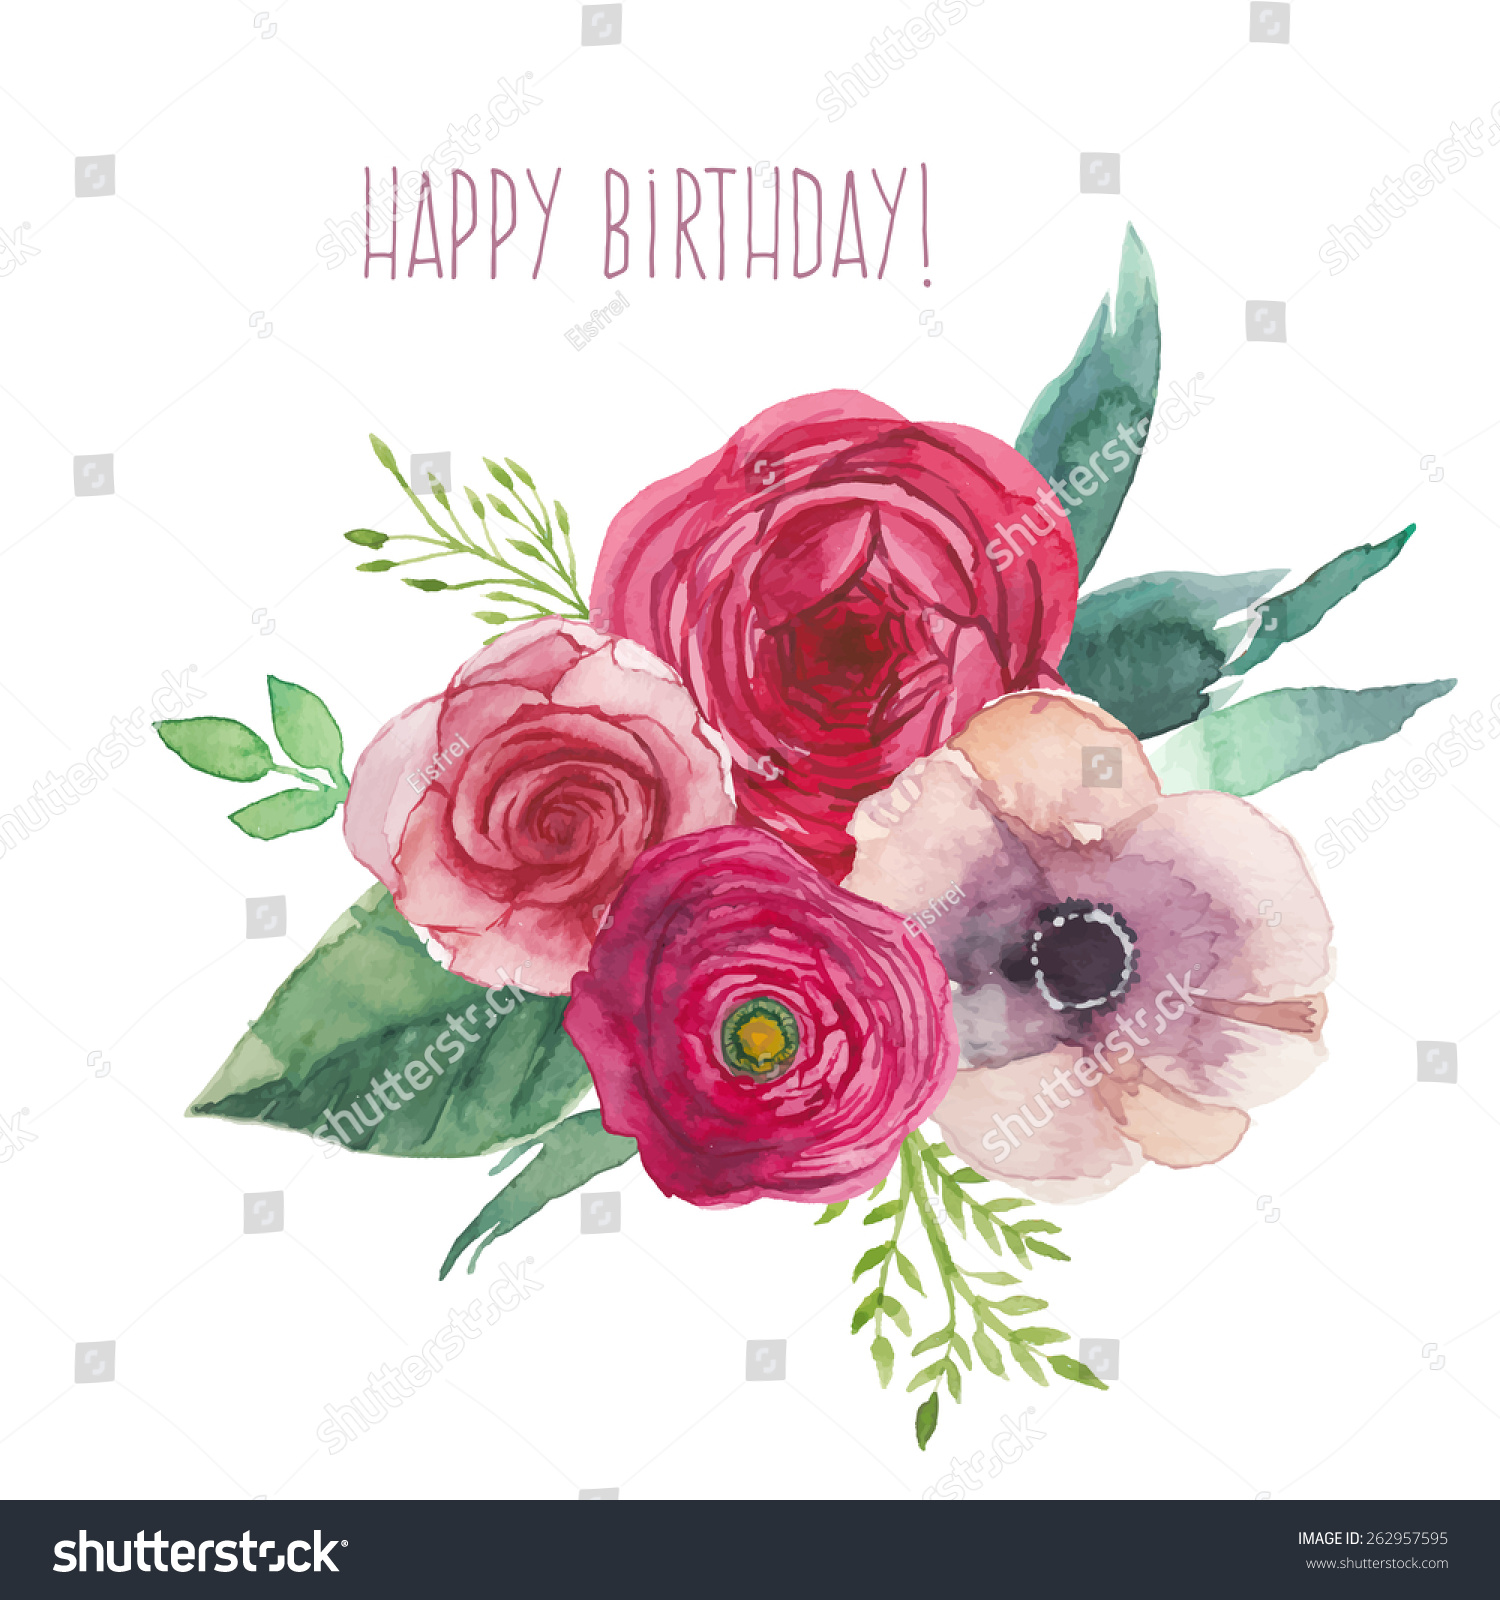 Watercolor Happy Birthday Card Flowers Bouquet Stock Vector (Royalty ...